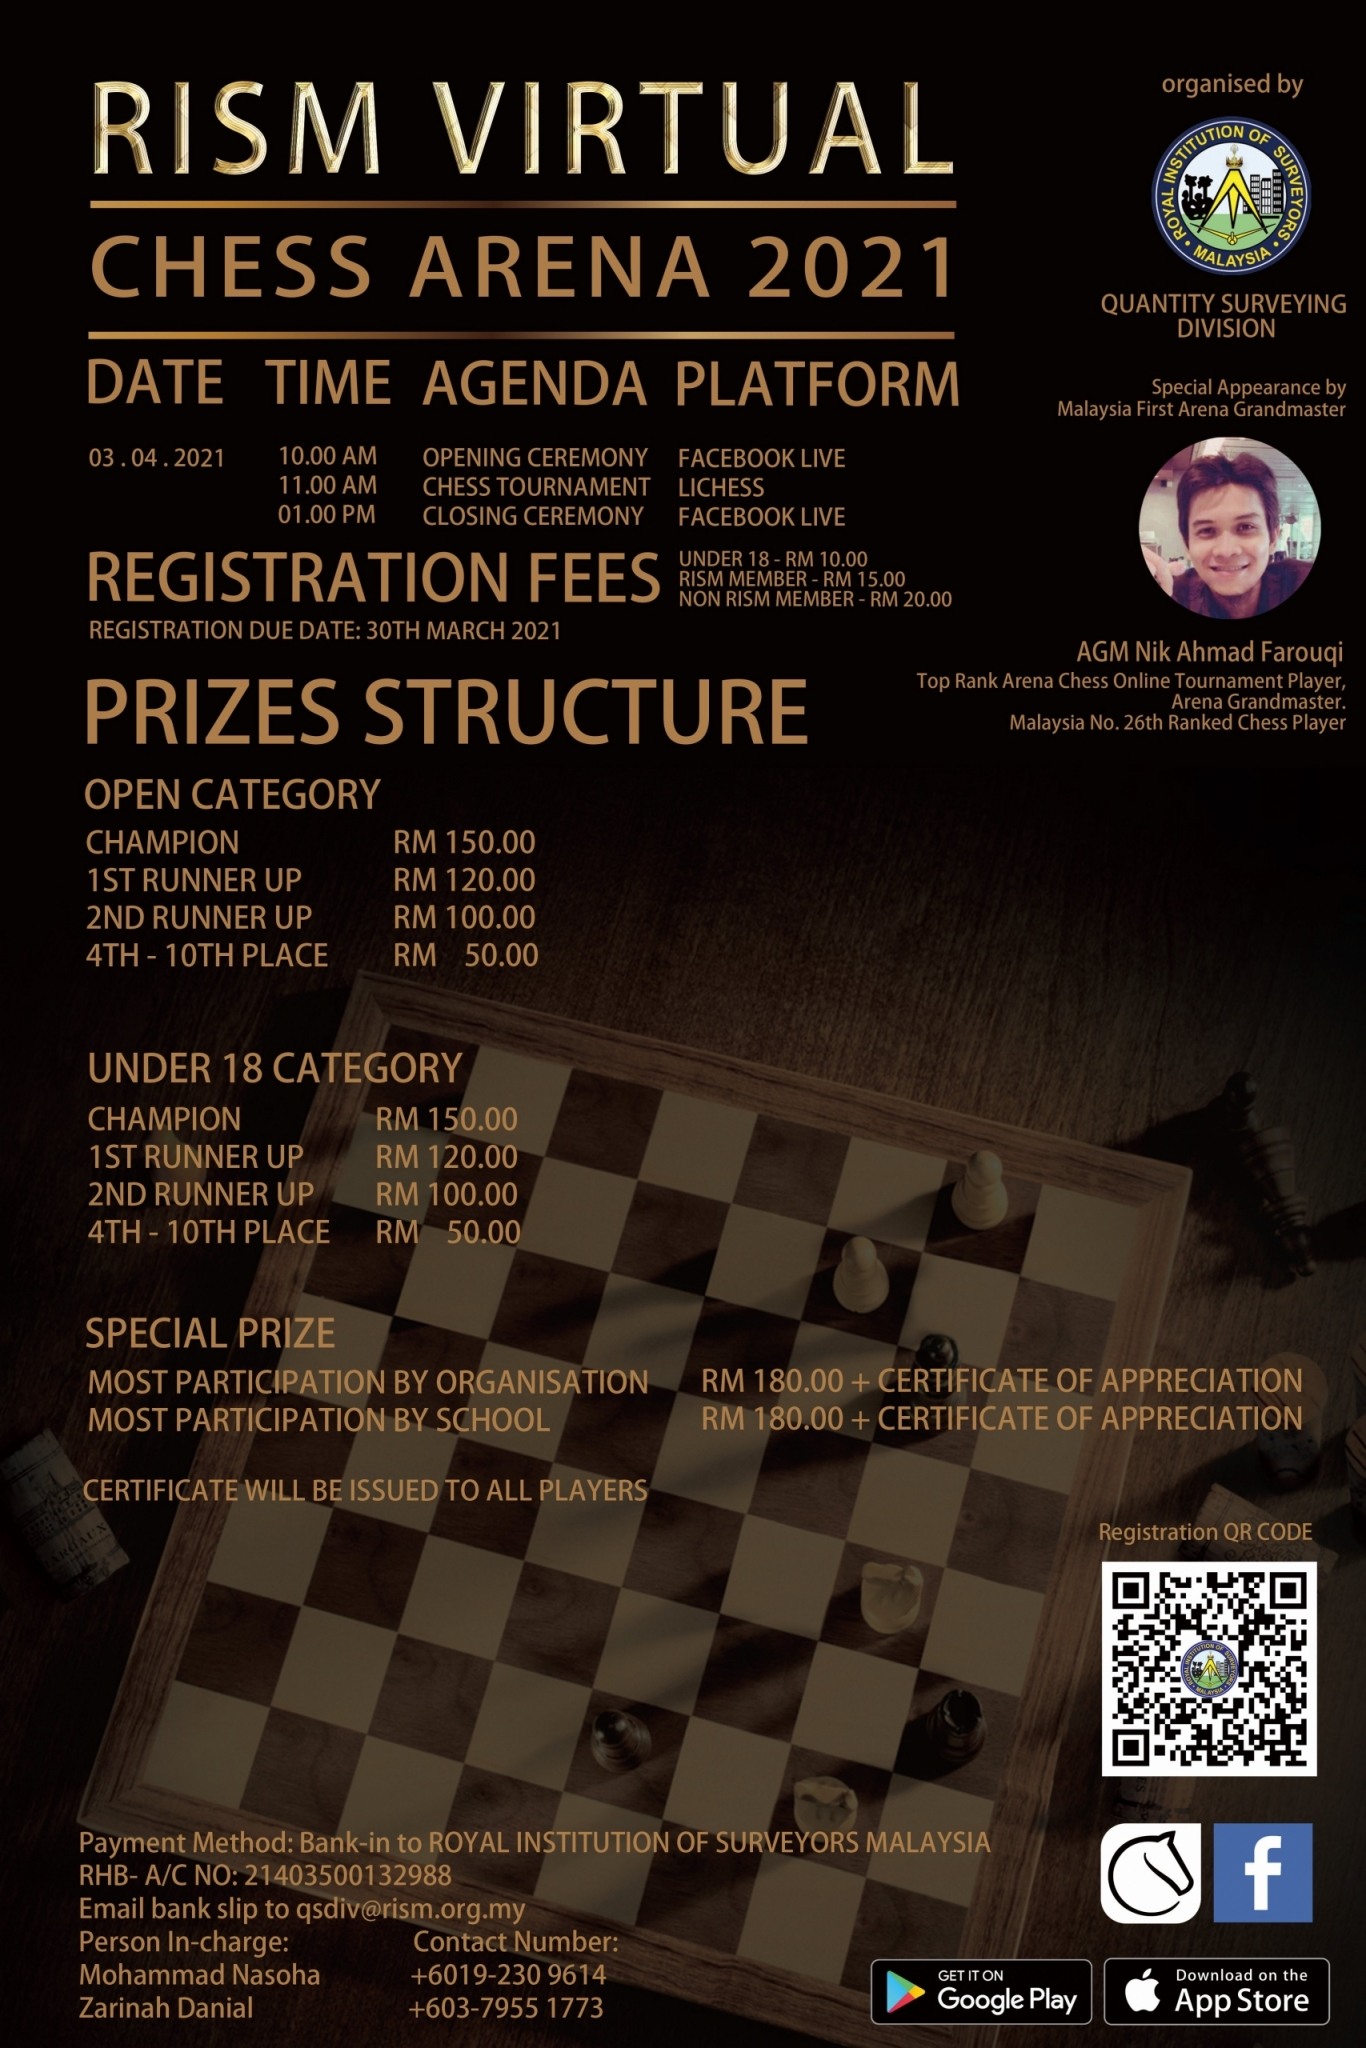 RISM Virtual Chess Arena 2021